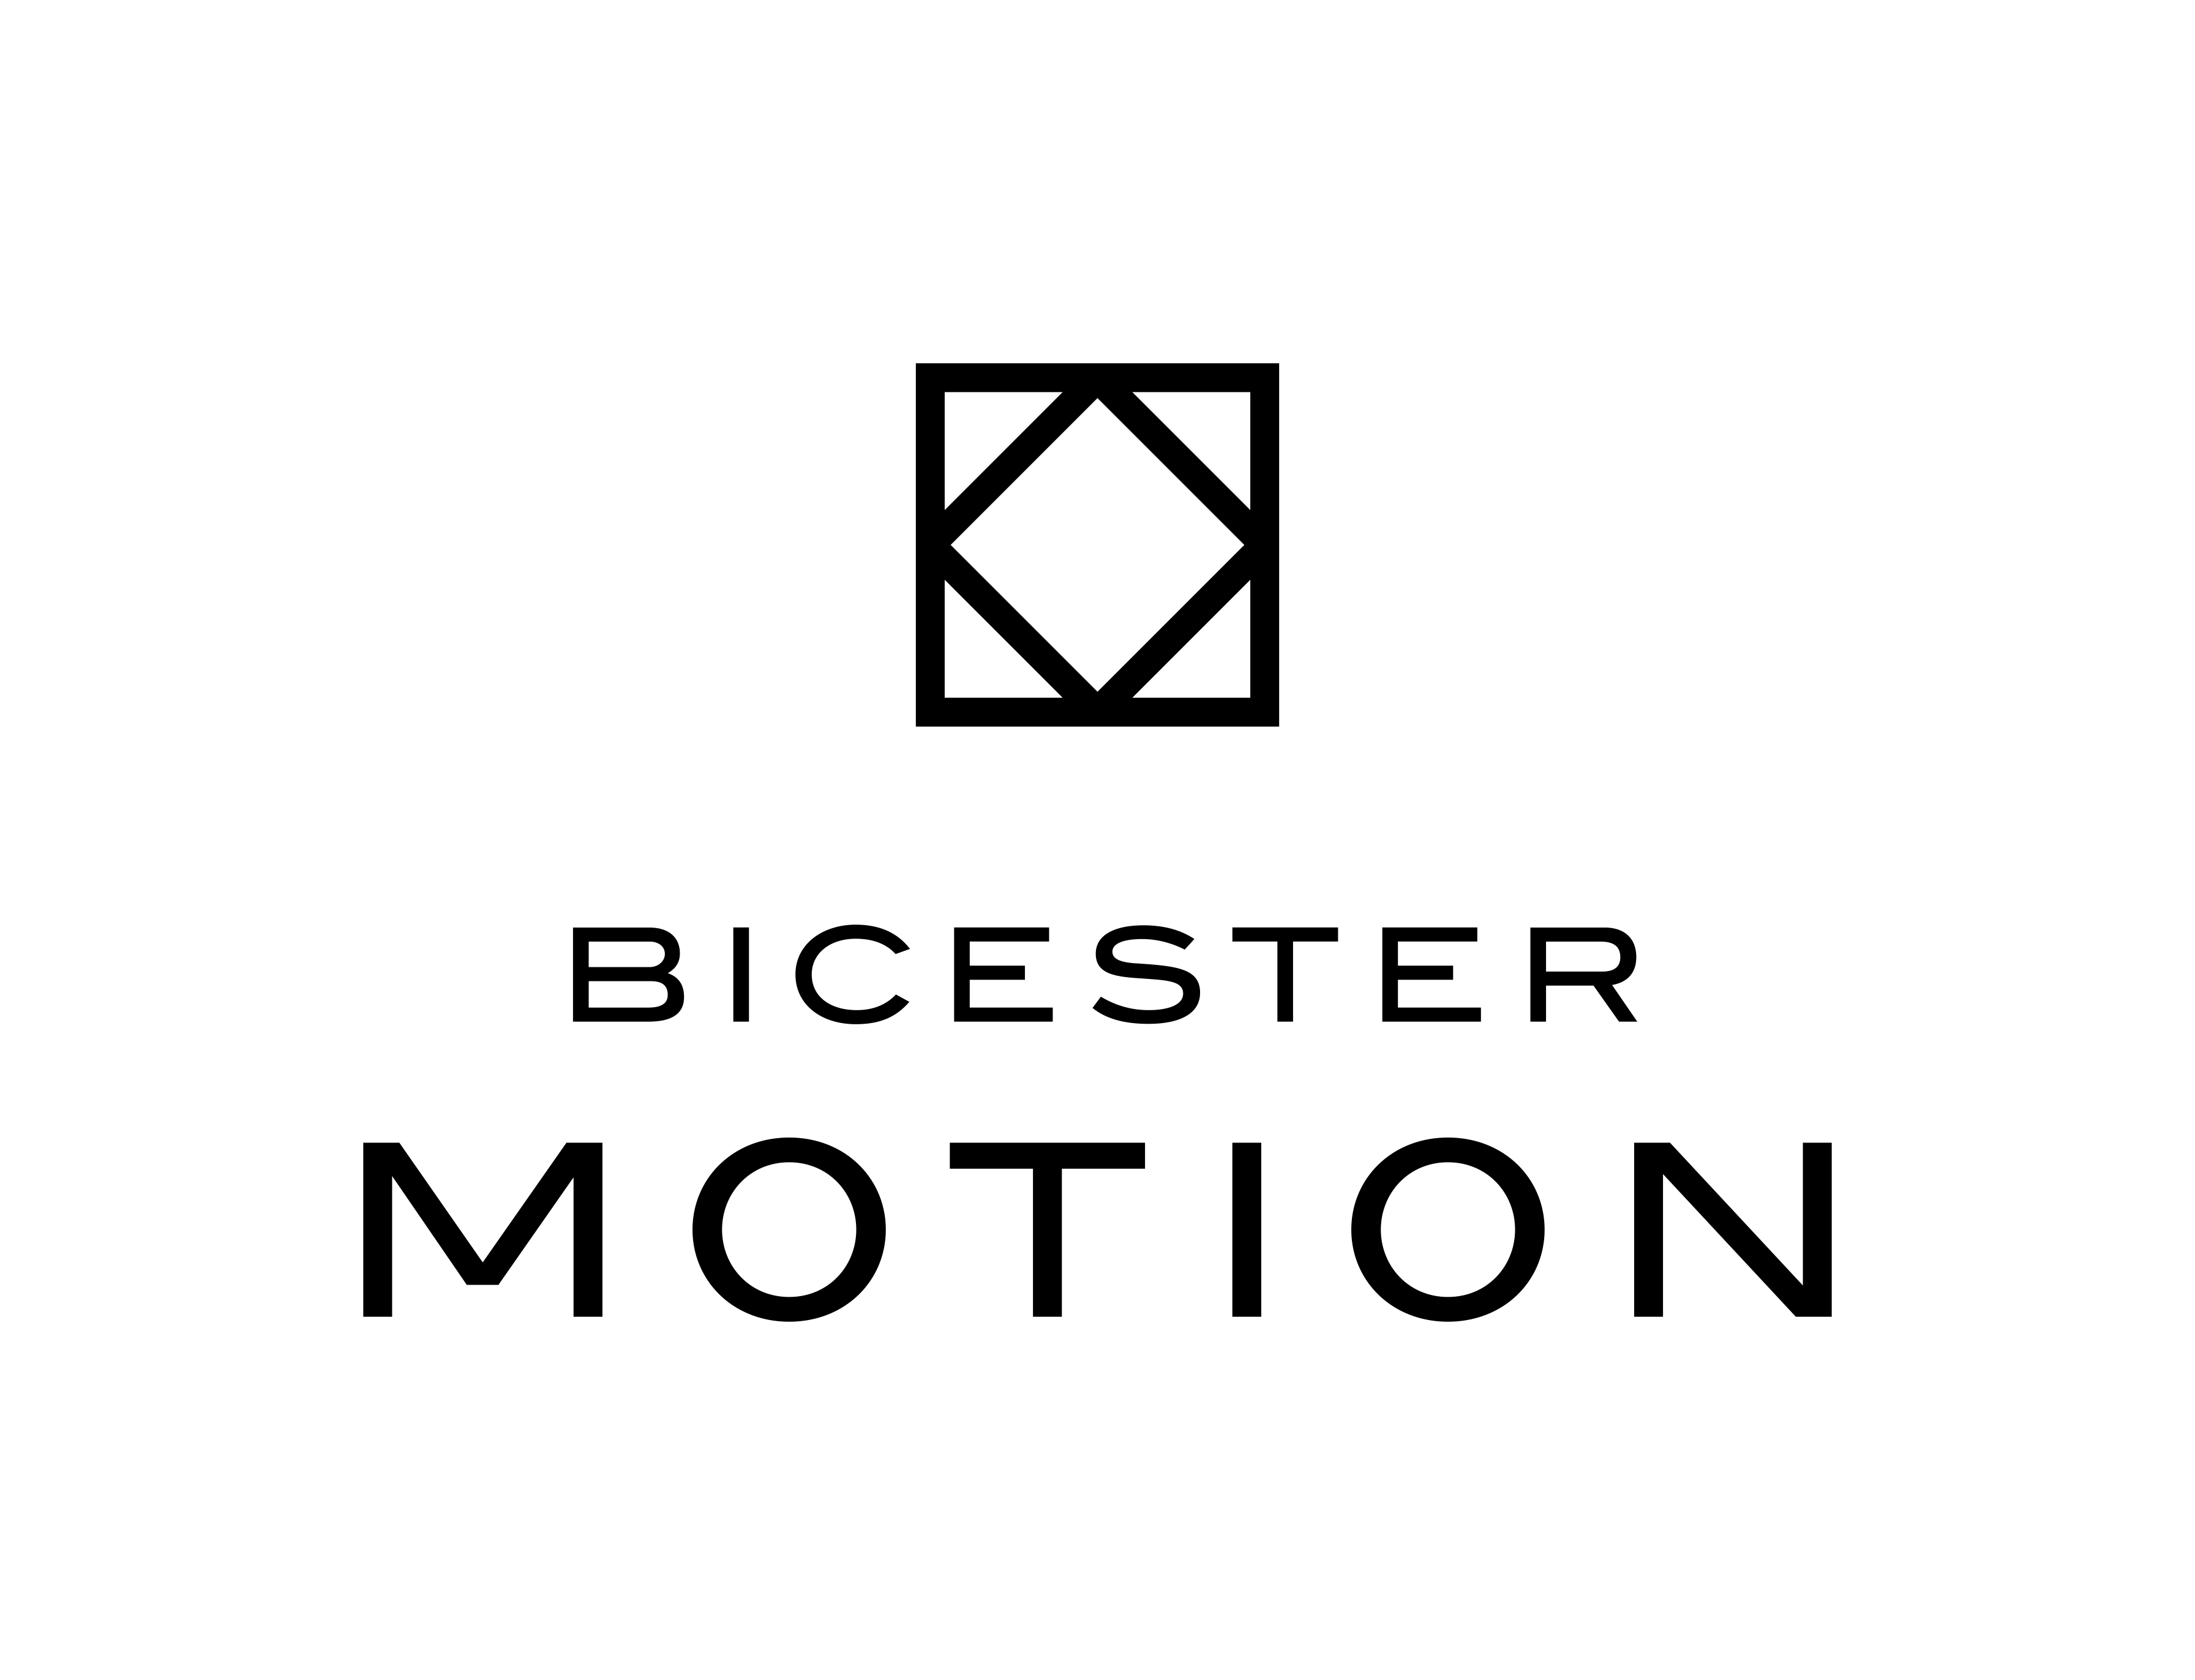 Bicester Motion